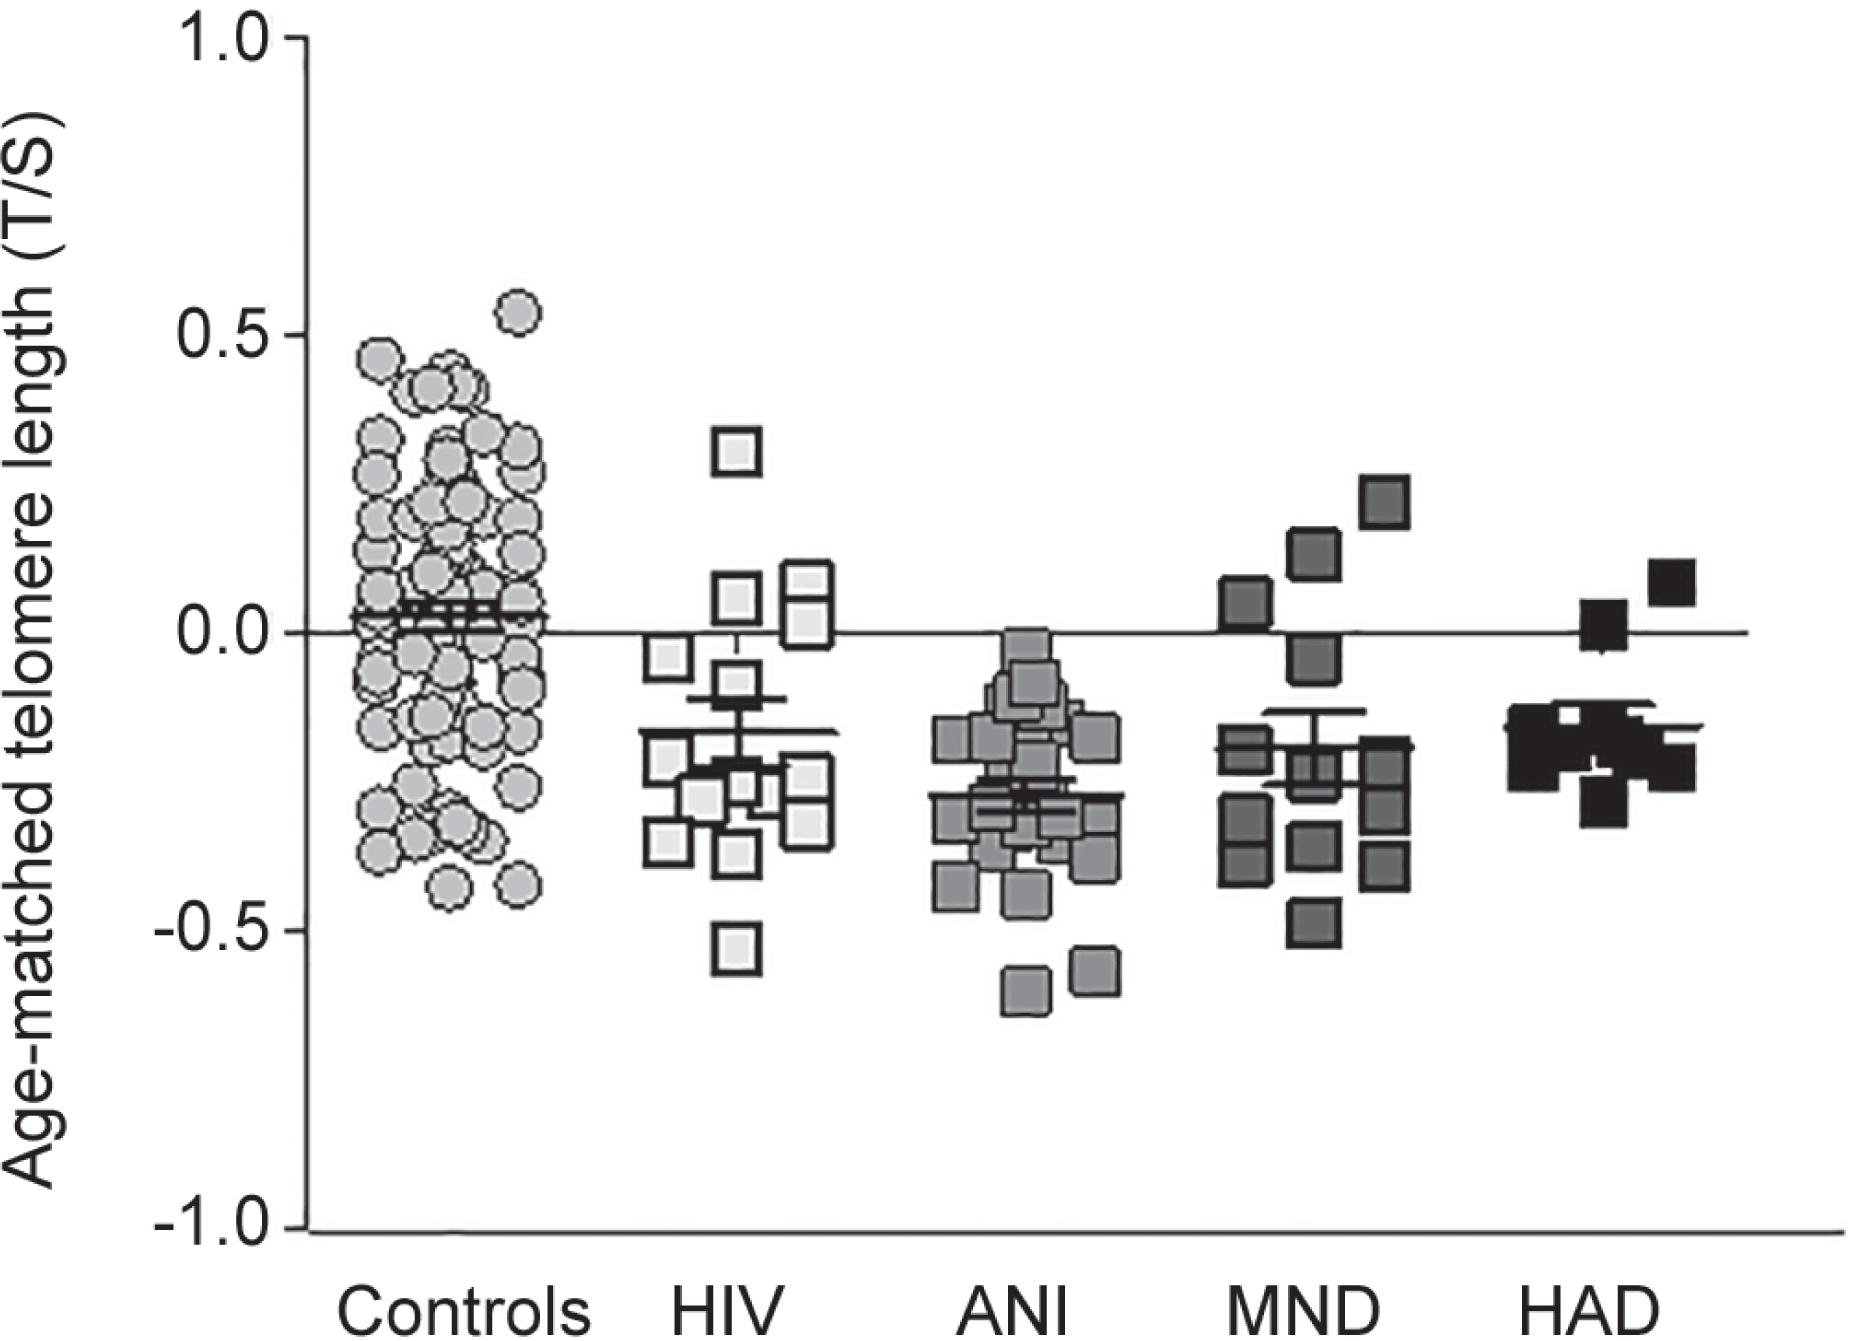 Telomere length from HIV patients and healthy controls according to their respective performances on neuropsychological tests